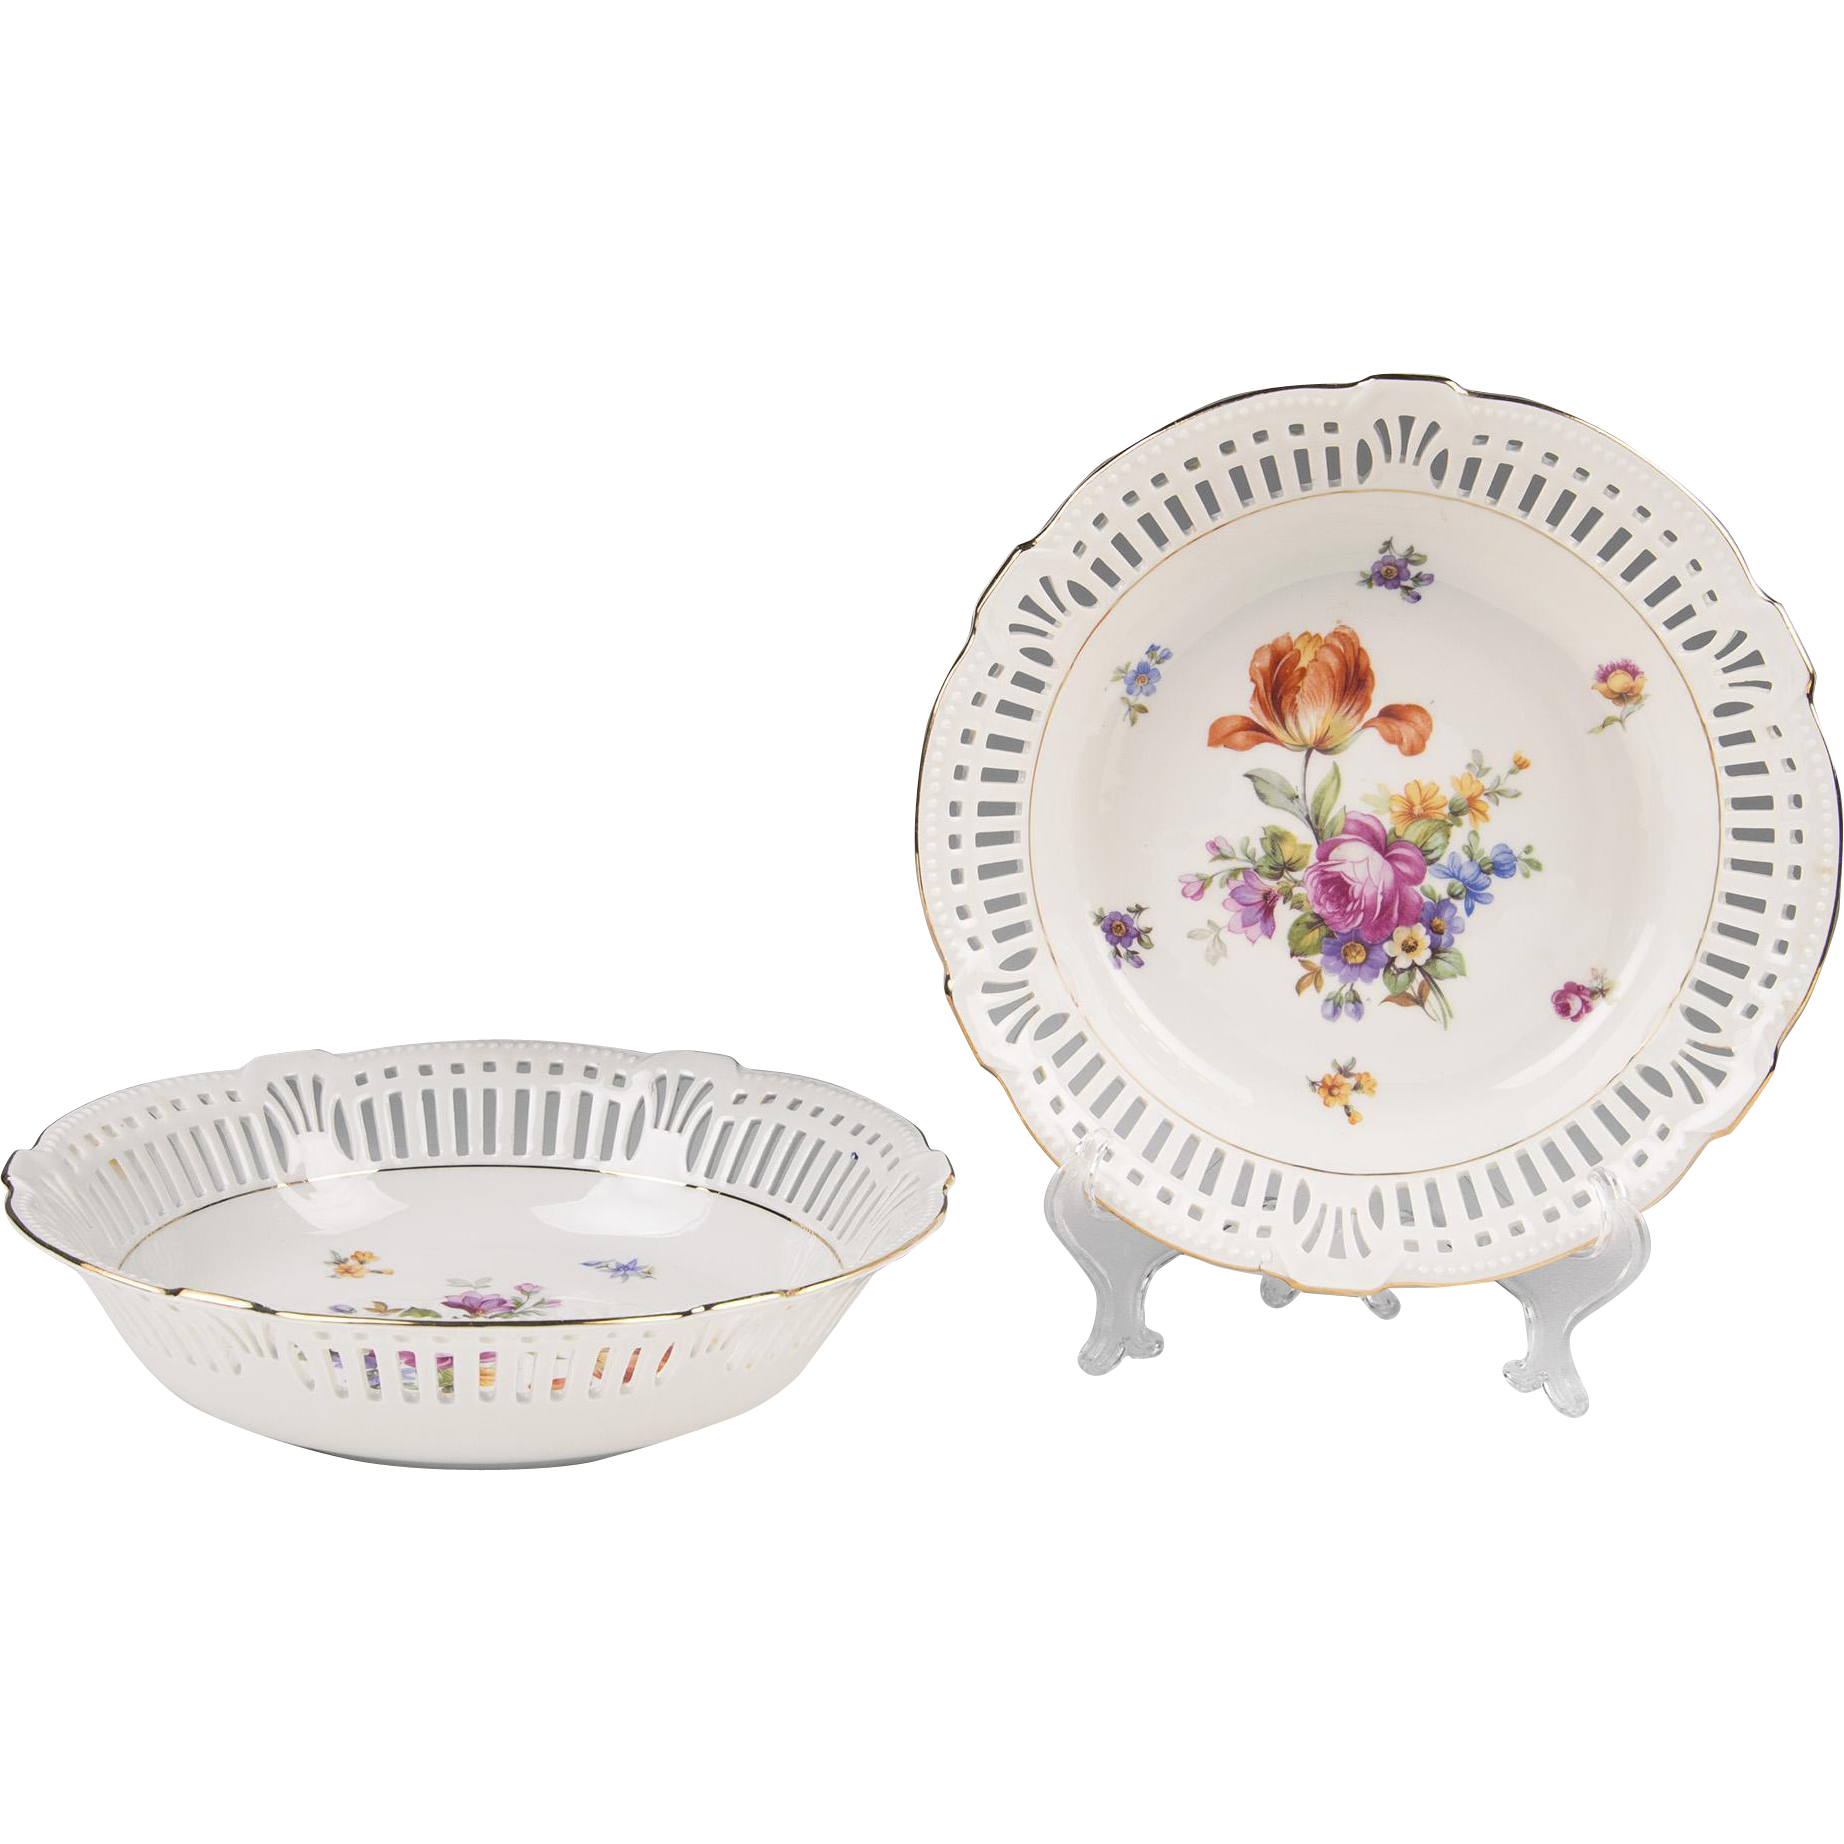 Pair of Schumann & Schreider Porcelain Serving Bowls